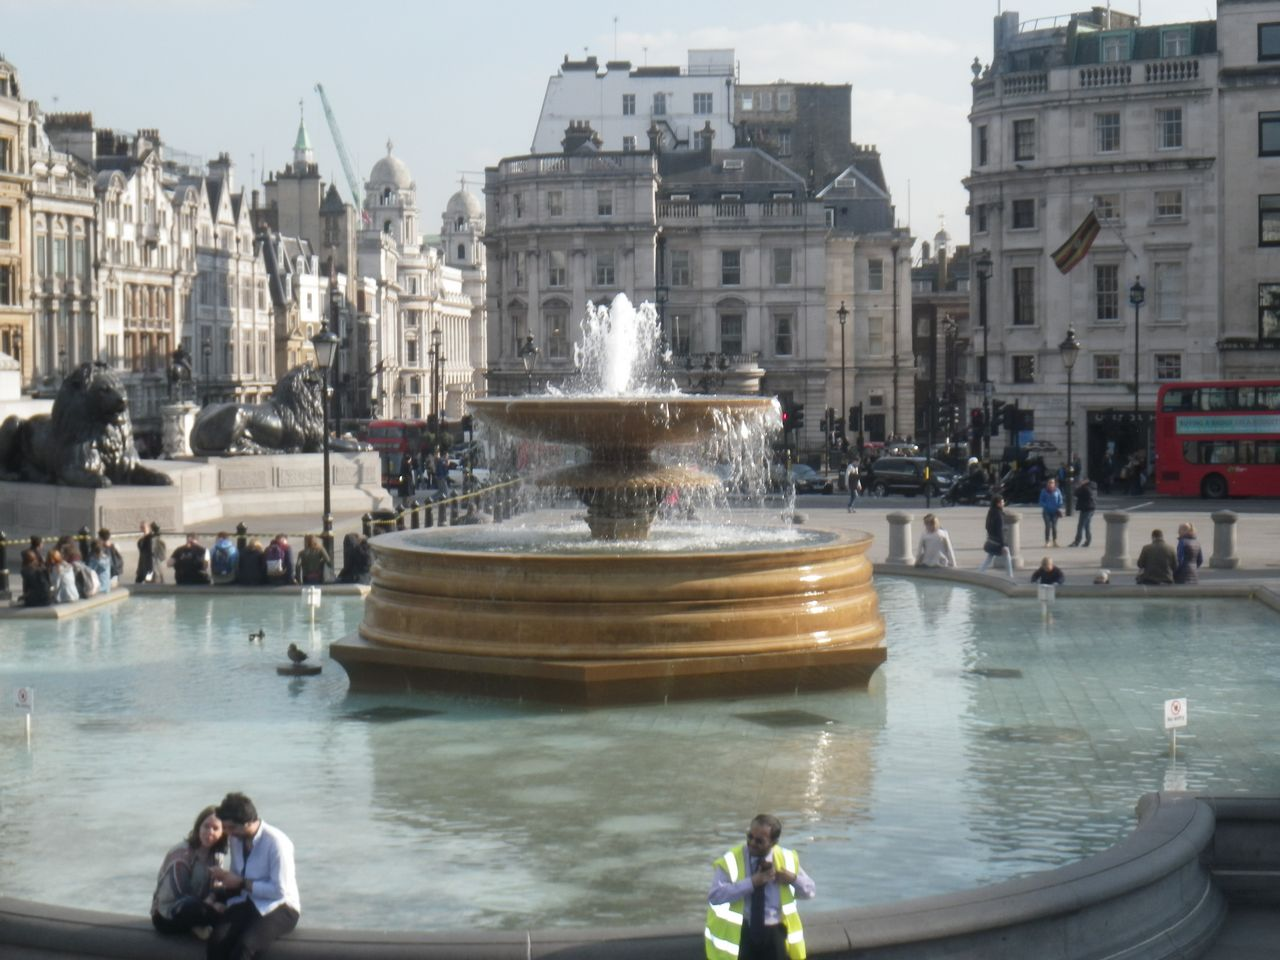 Where to stay in London best areas Trafalgar Square's iconic fountain